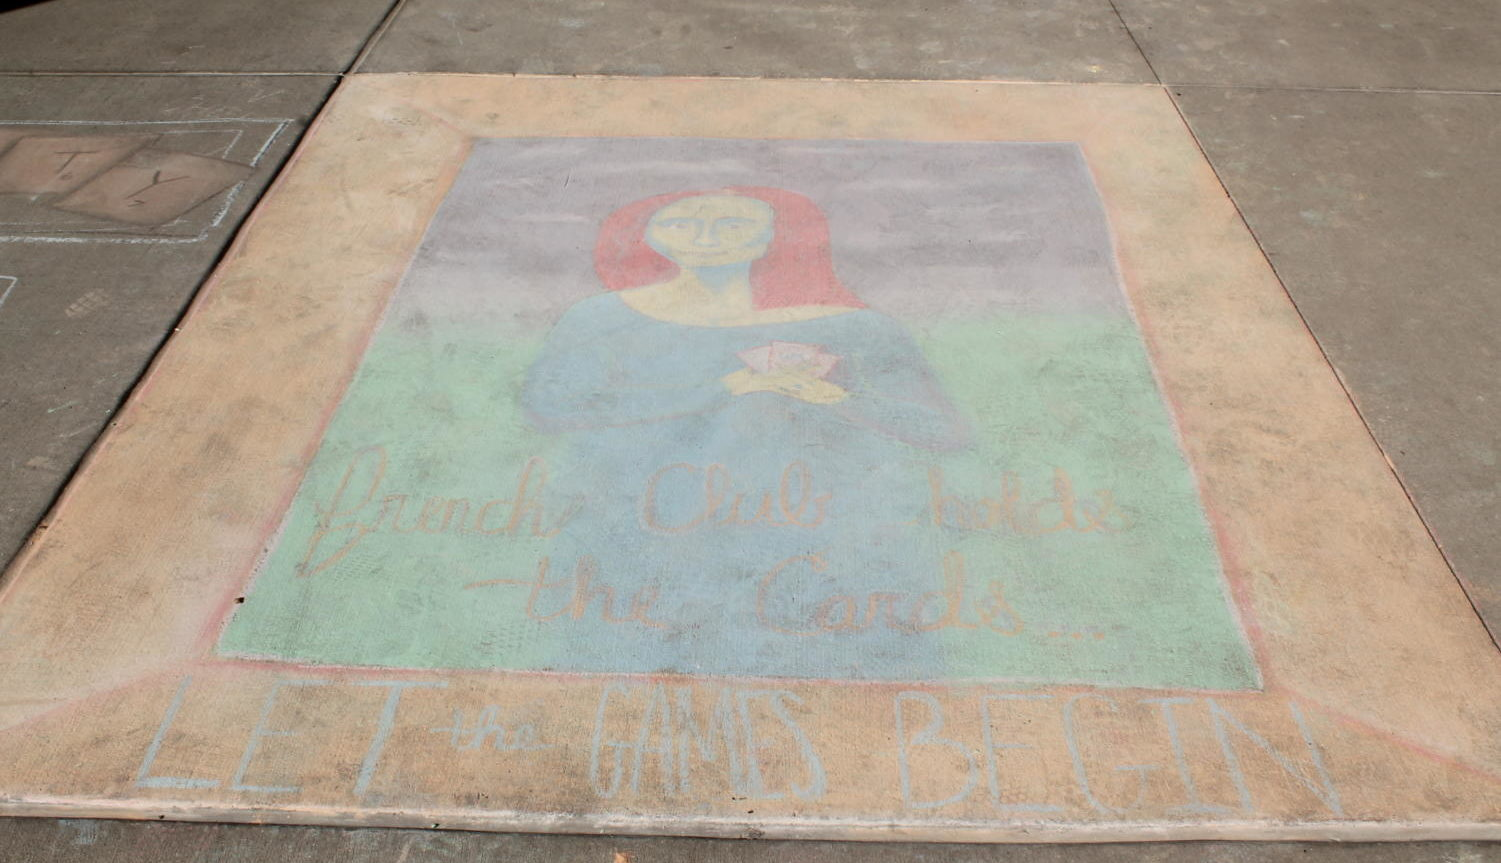 French Club's beautiful chalk masterpiece of the Mona Lisa.